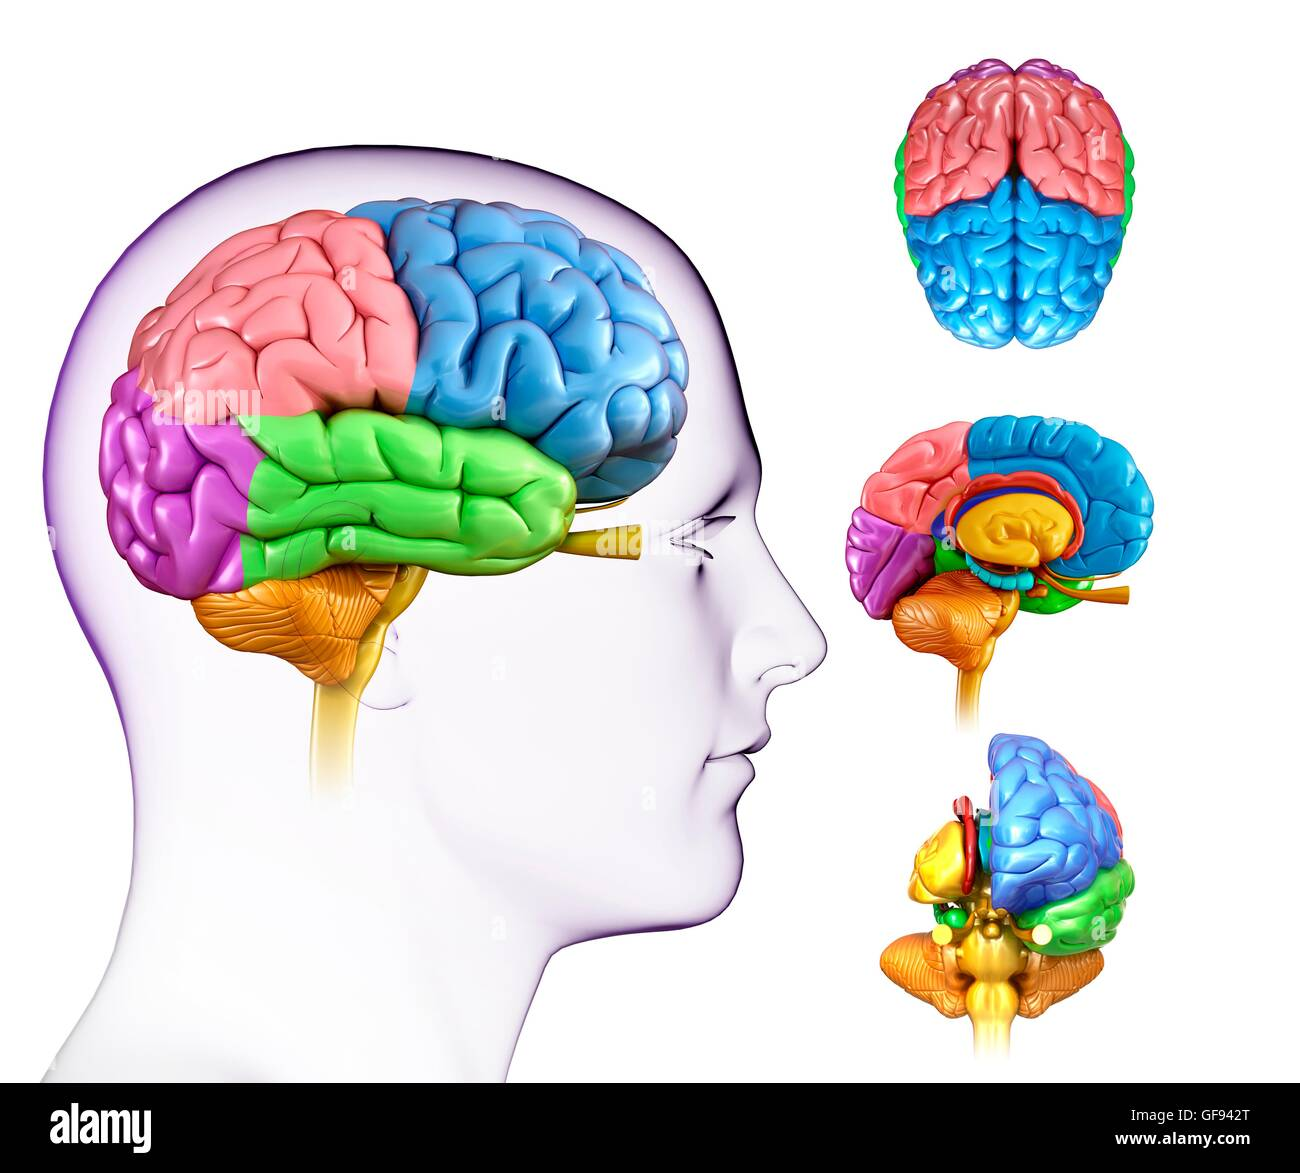 Occipital Posterior Stock Photos & Occipital Posterior Stock Images ...